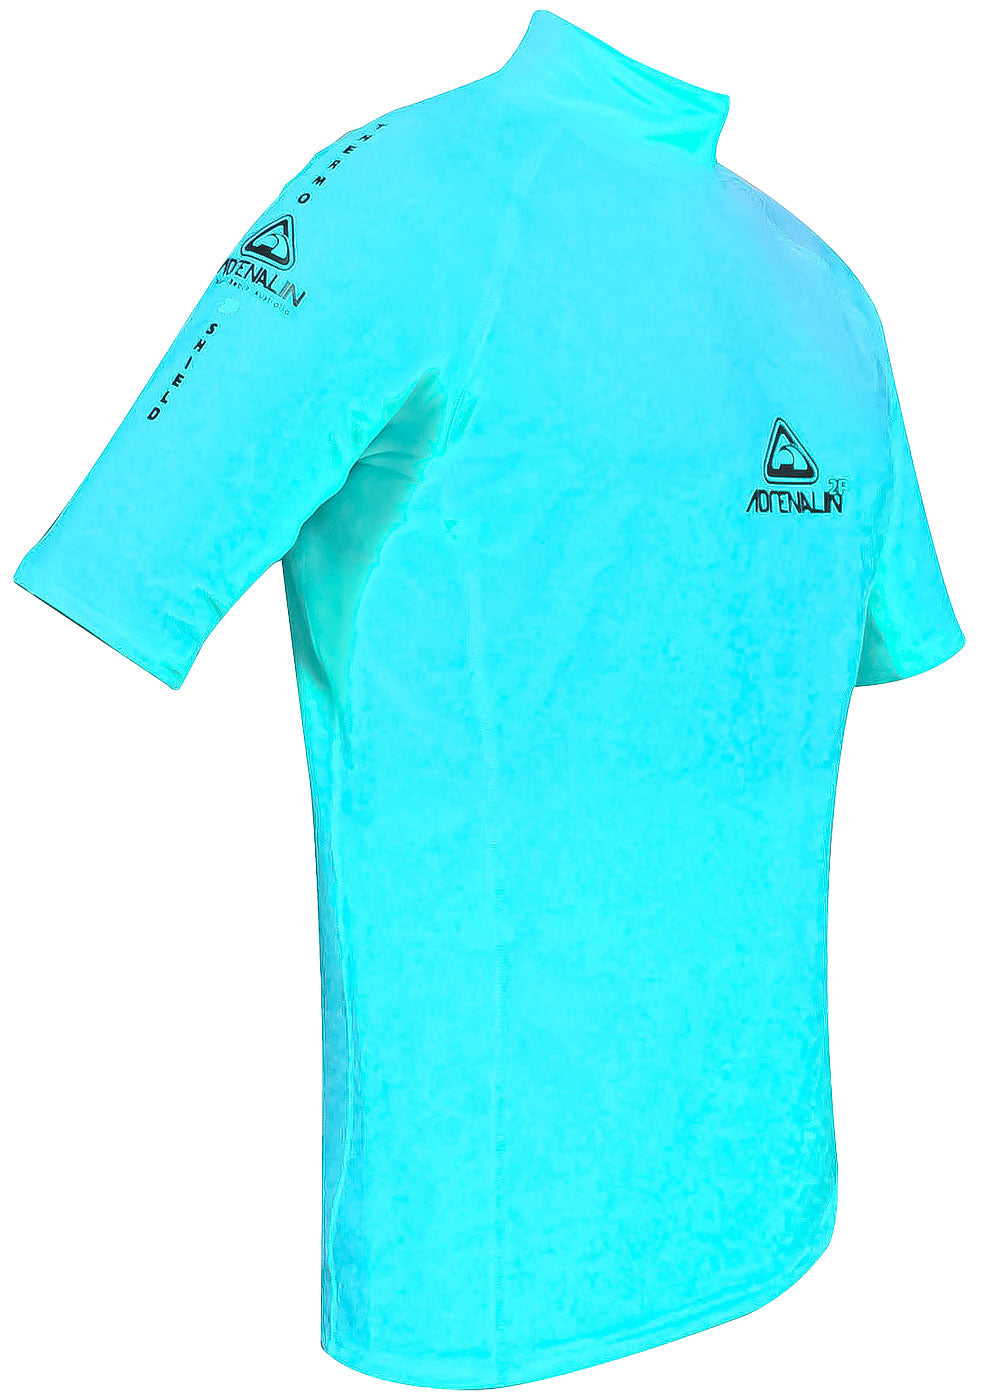 Adrenalin 2P Thermal short Sleeve Rash Guard aqua buy online rashie